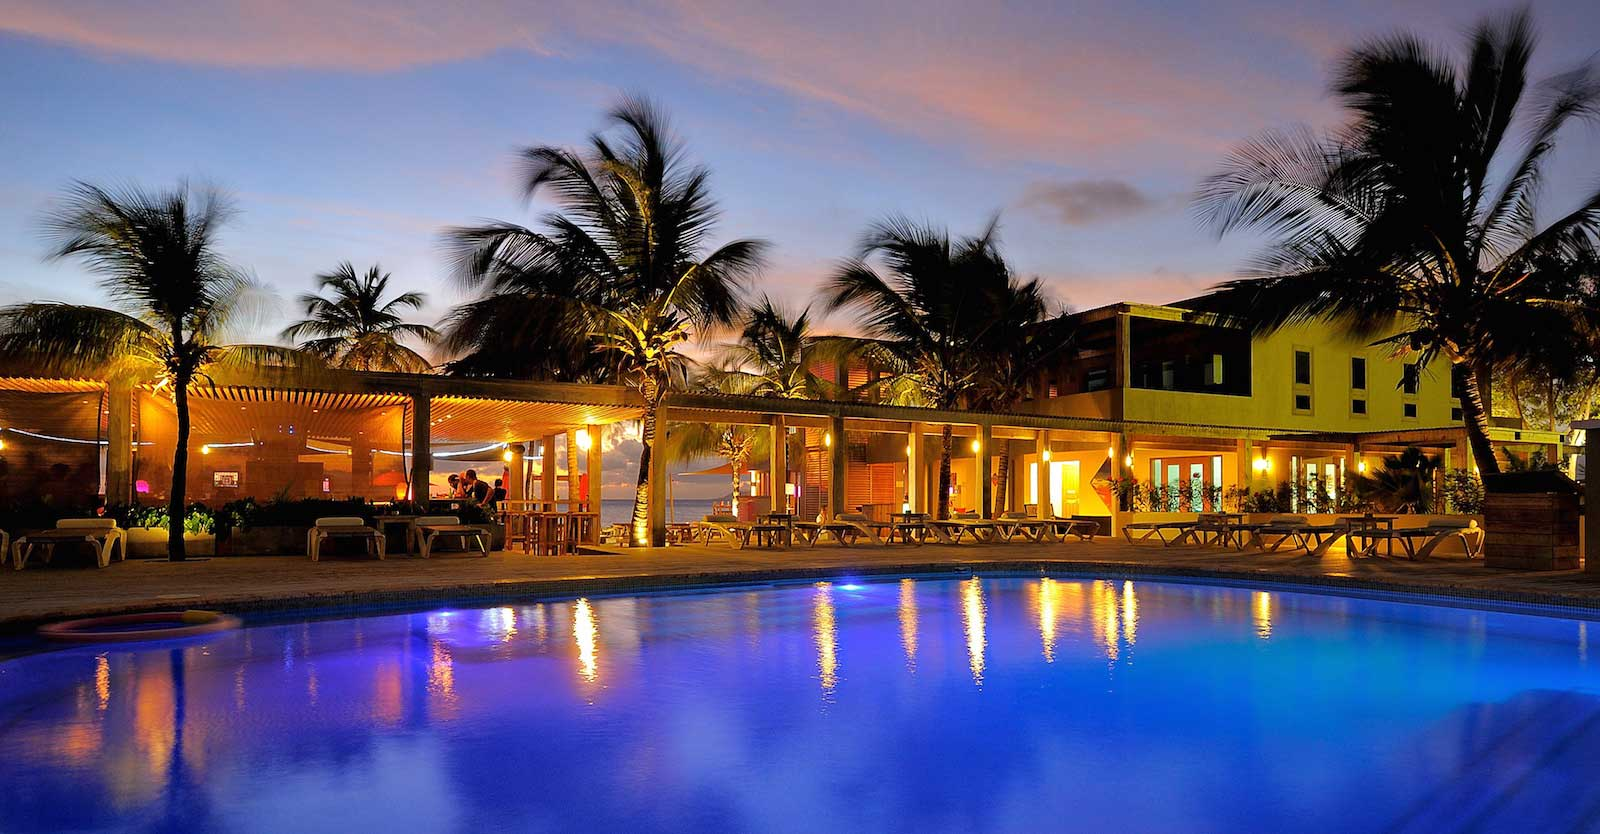 Enjoy The Caribbean Atmoshere At Eden Beach Resort Bonaire